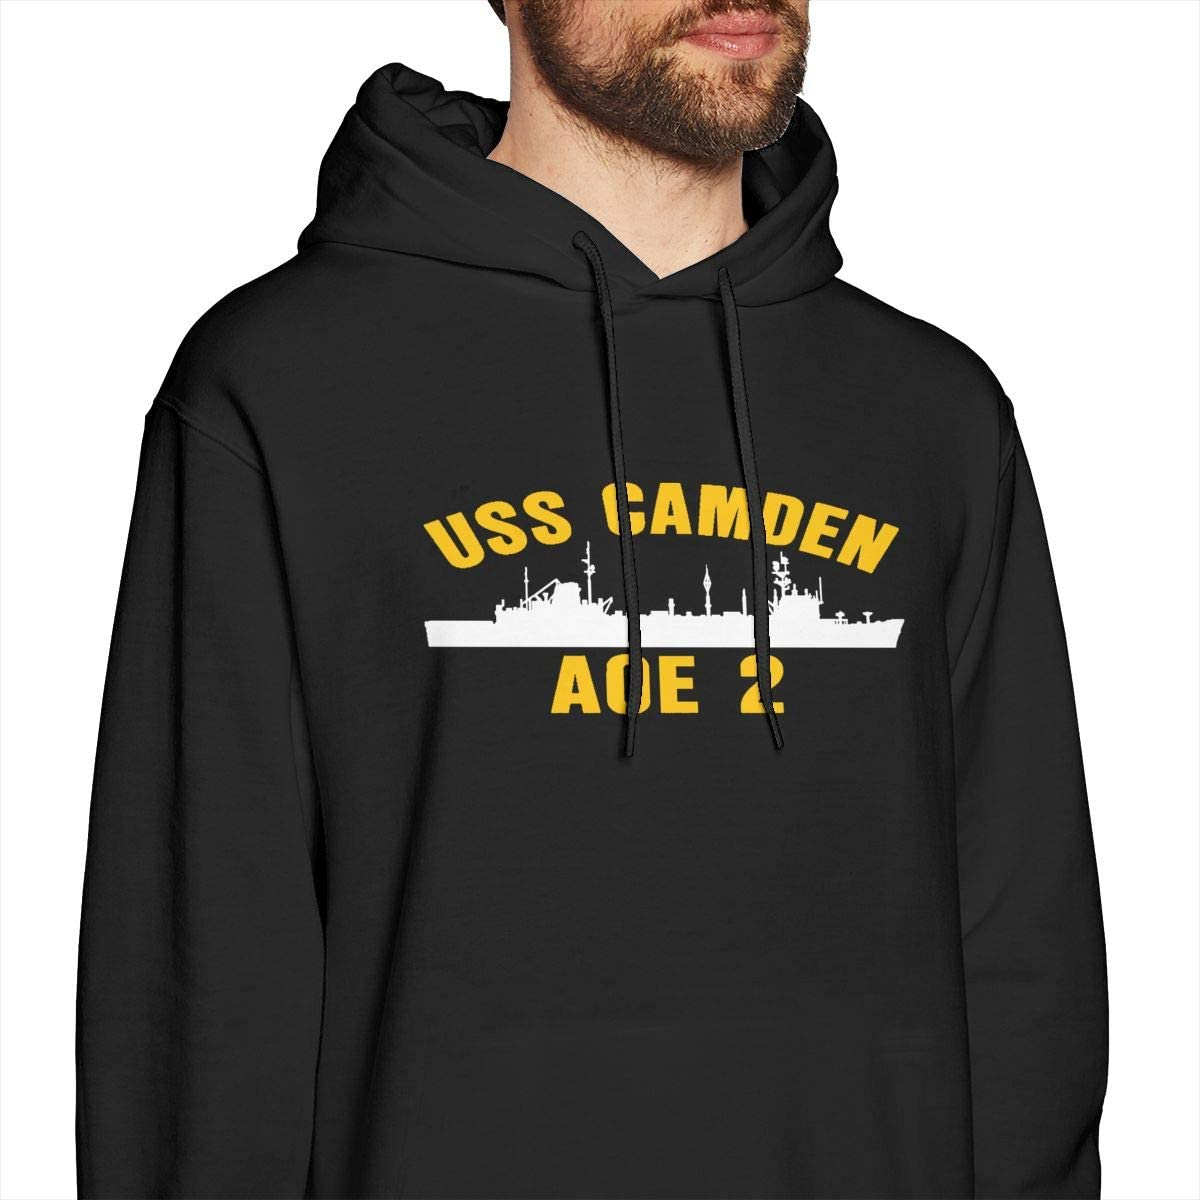 HONGHUOmao USS Camden AOE 2 Mens Fashion Pullover Casual Hoodie Hooded Sweatshirt with Pocket